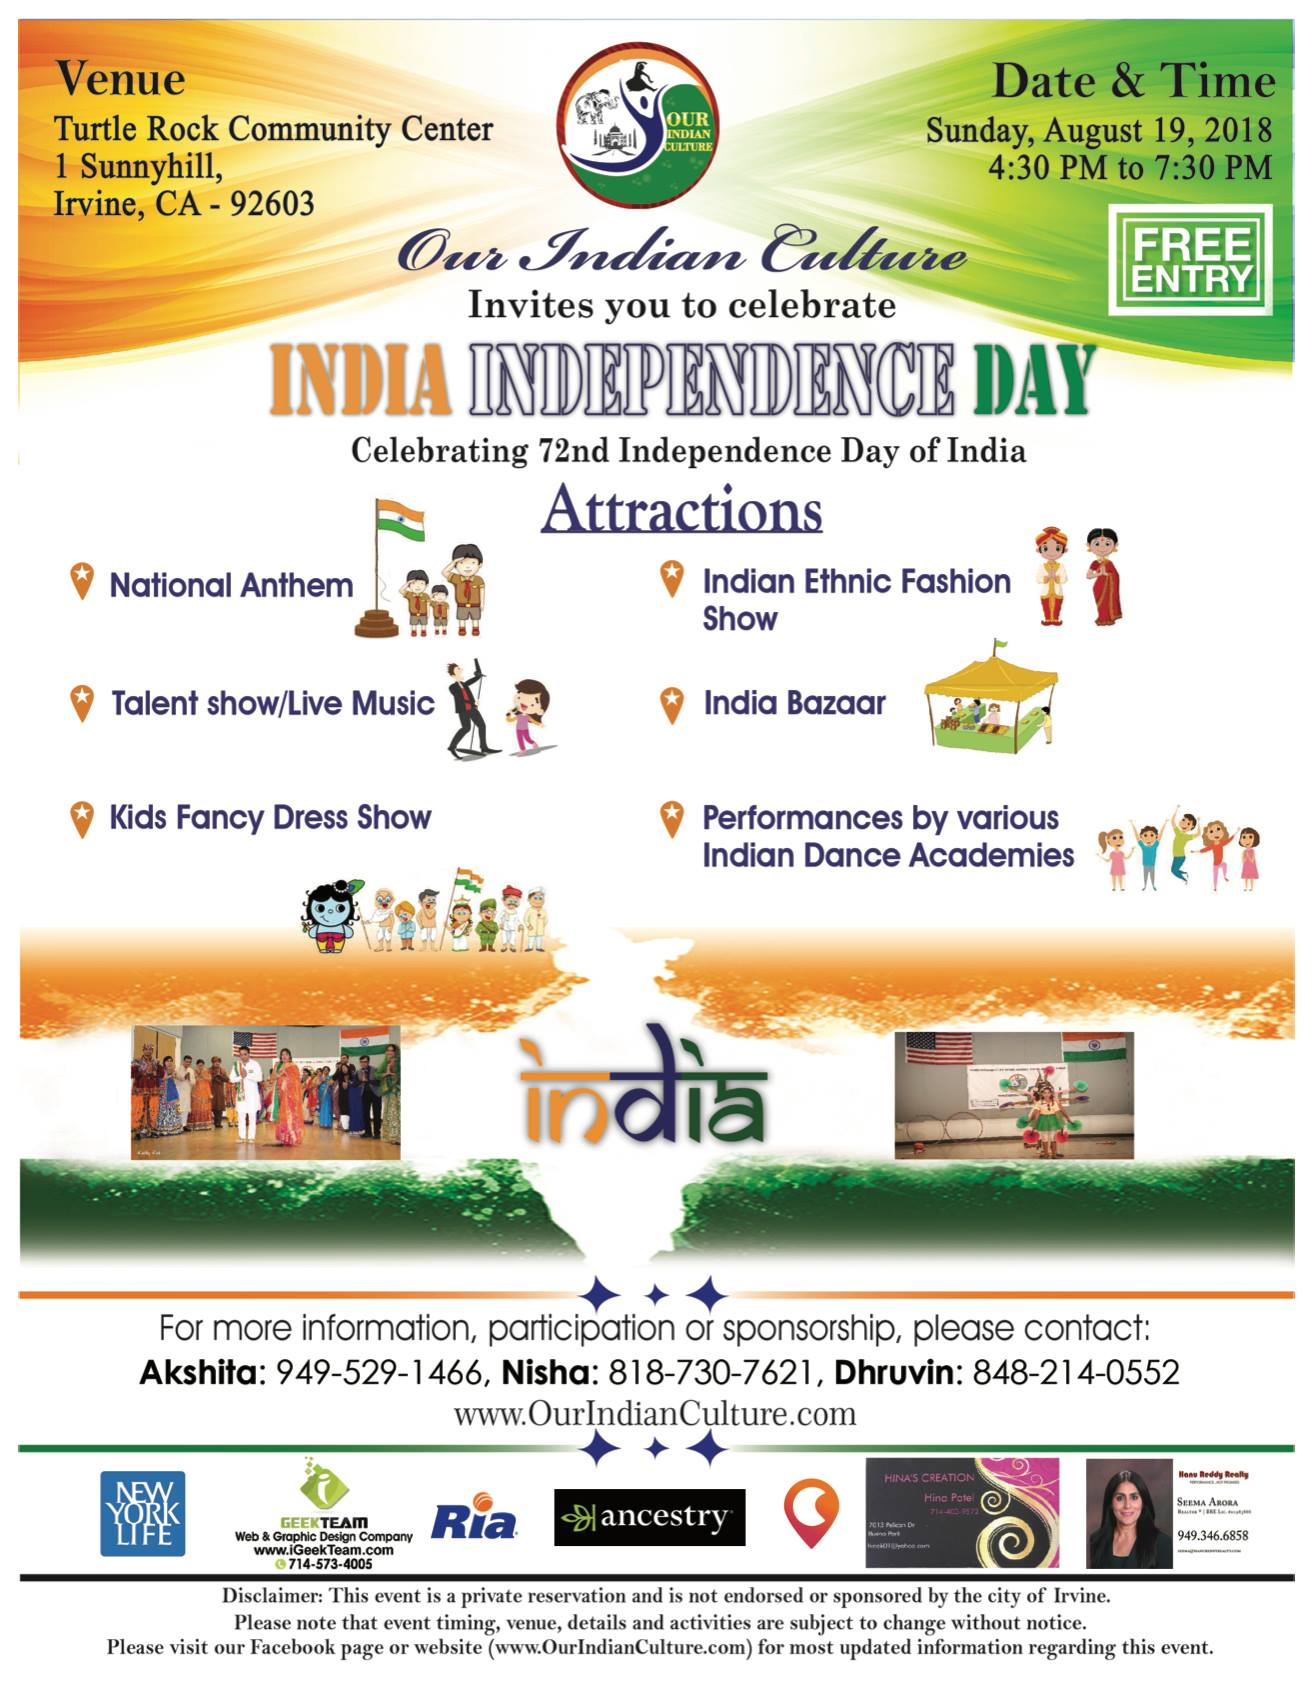 72nd Independence Day of India Celebration by OurIndianCulture.com in Irvine, CA, USA